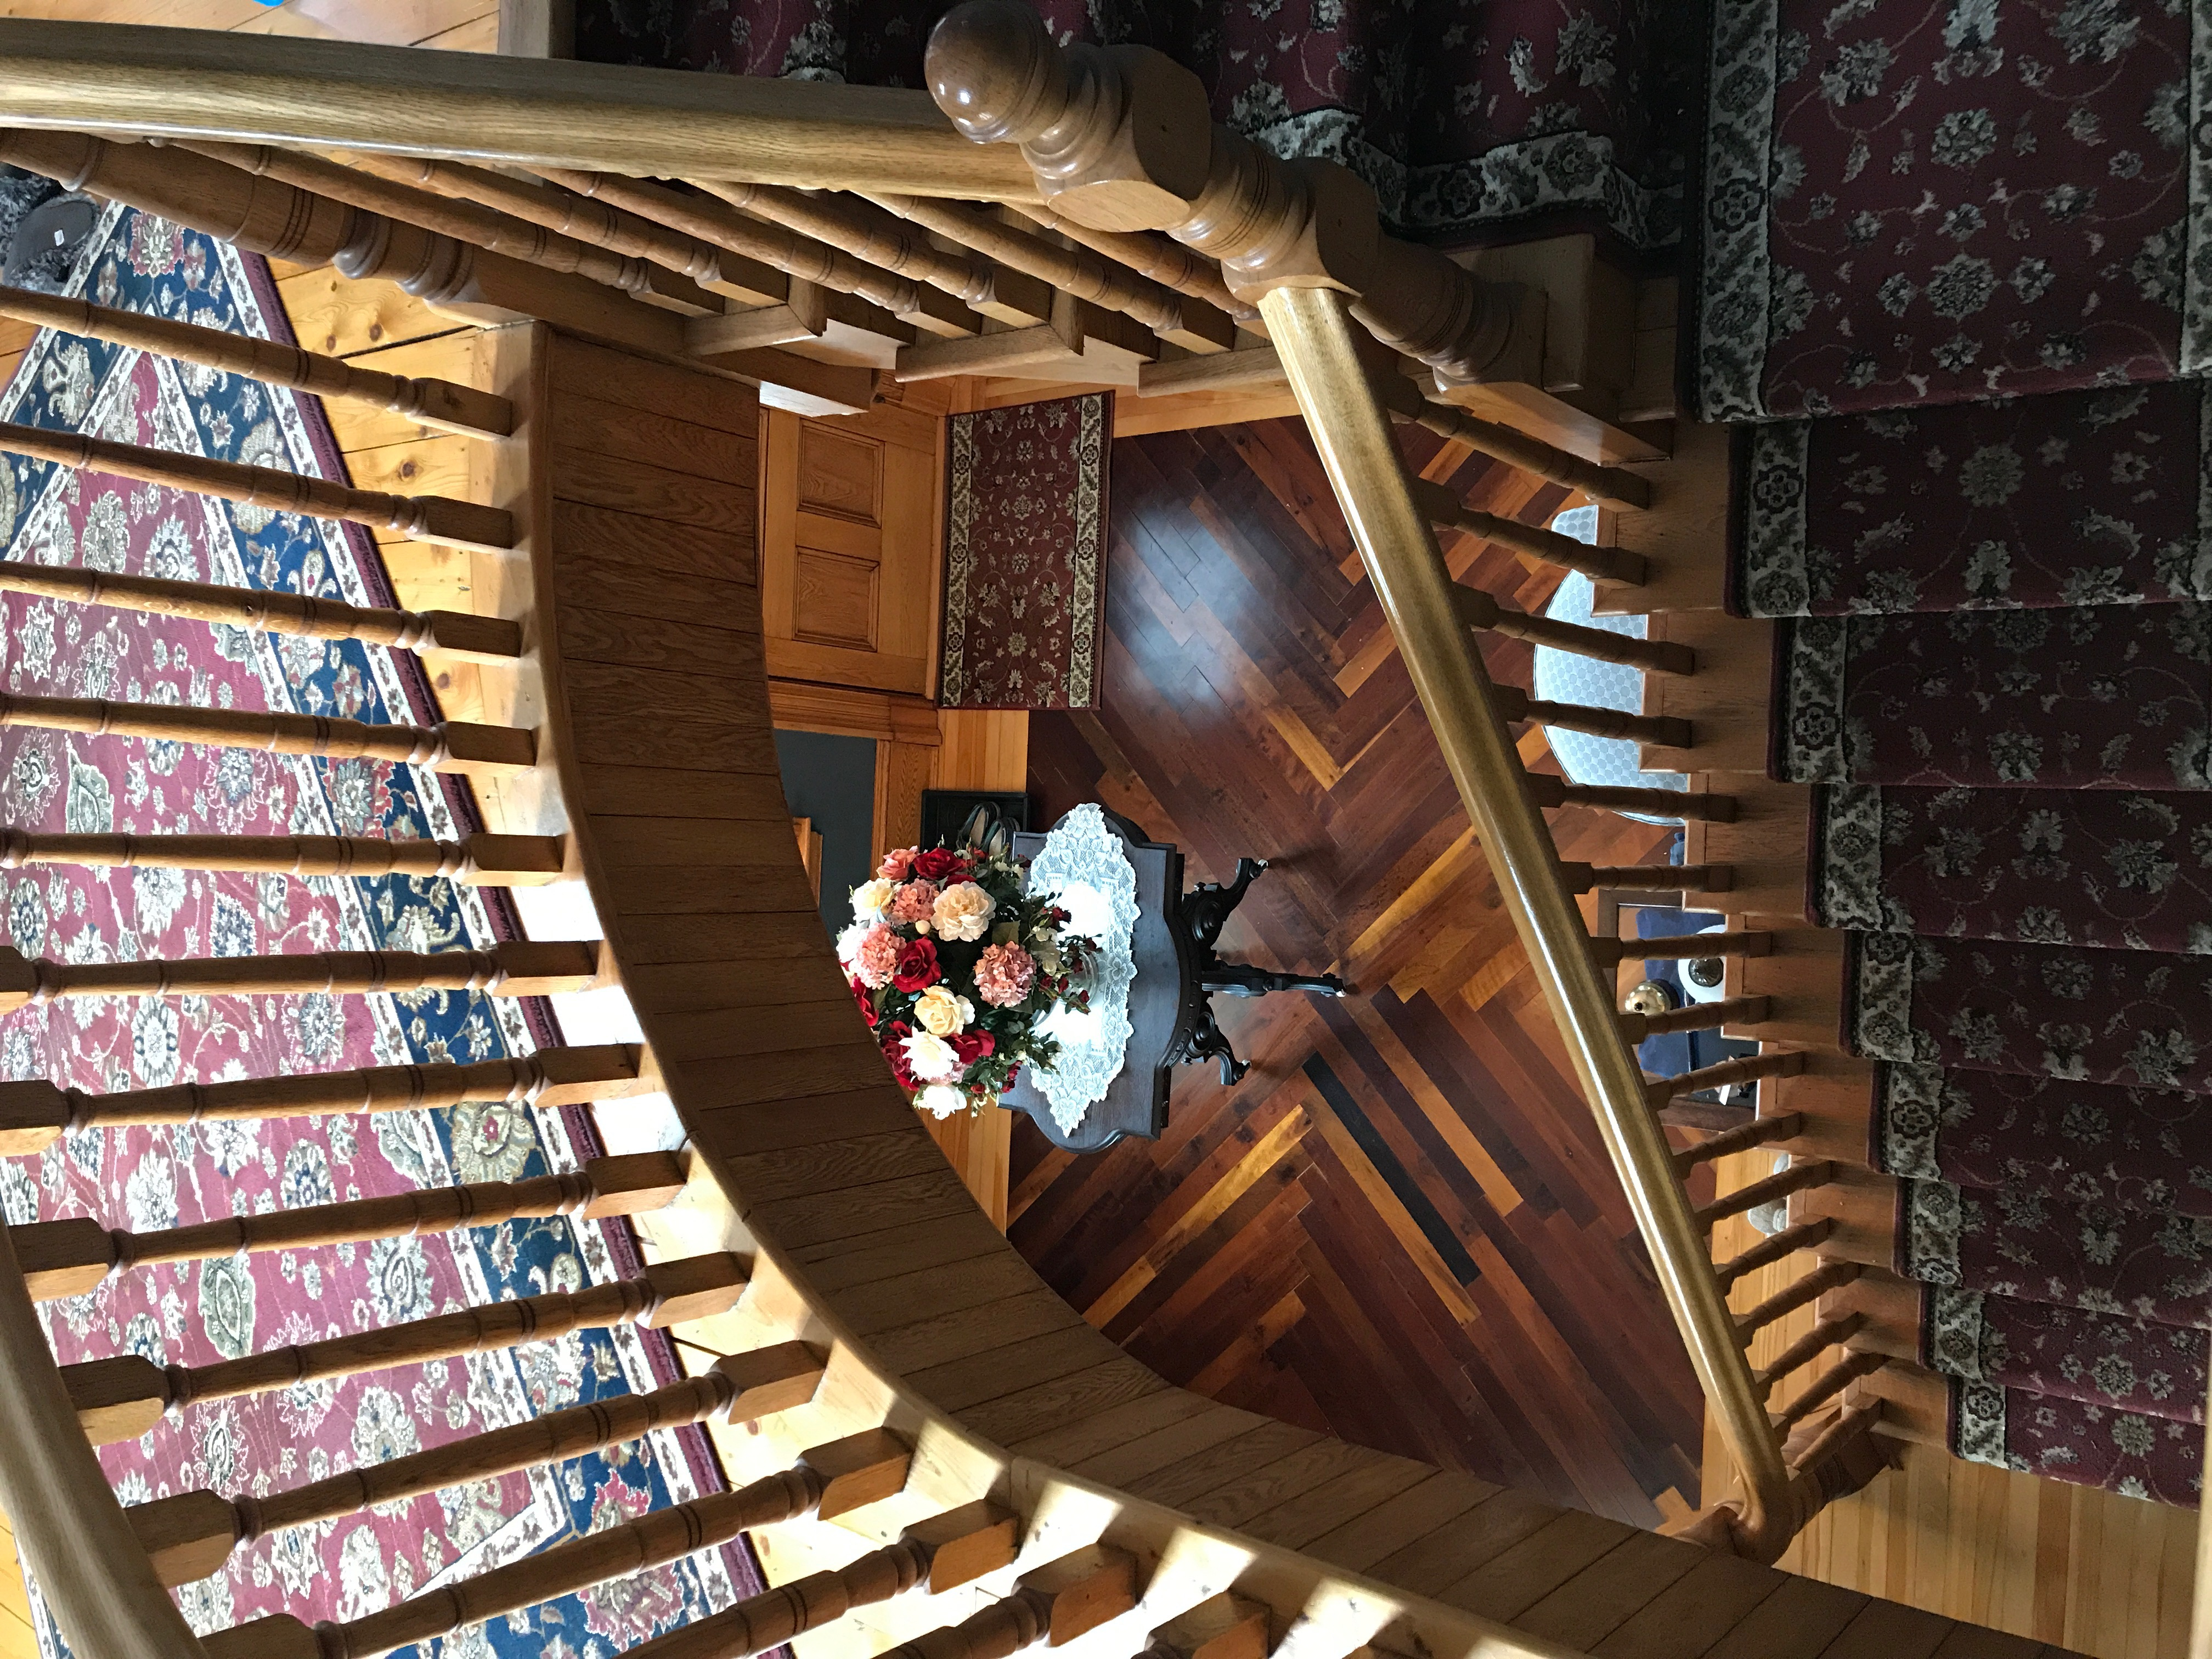 Ship Captain's spiral staircase